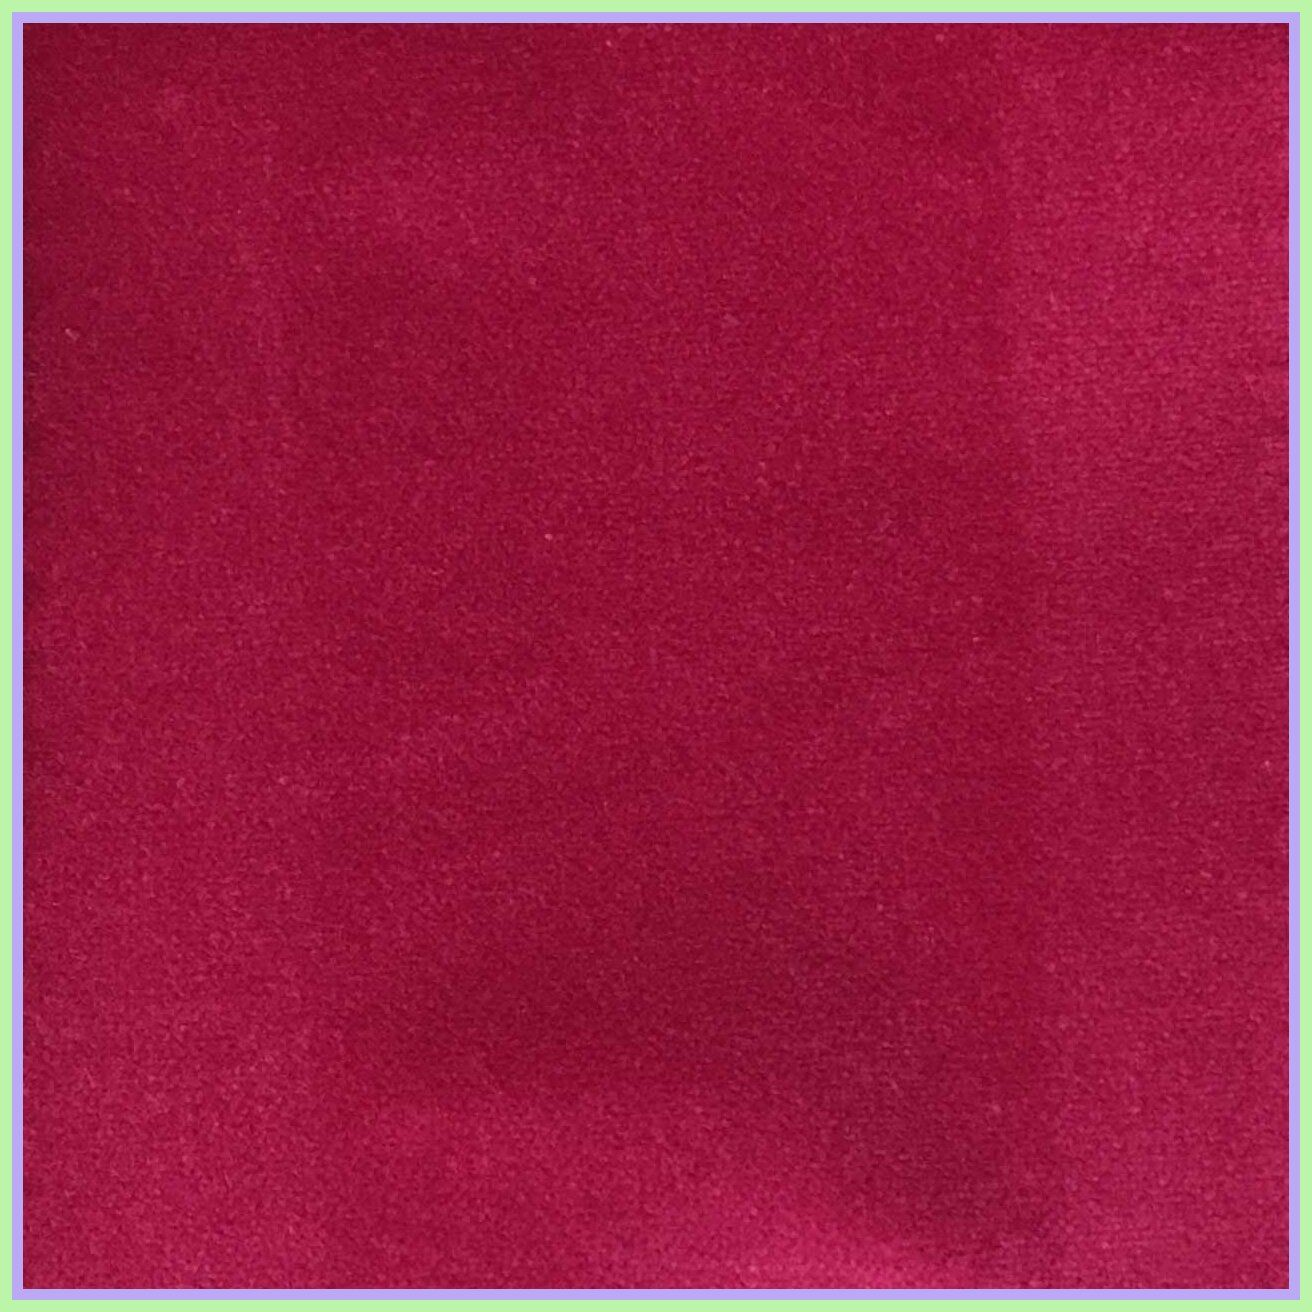 123 Reference Of Velvet Sofa Fabric Online India In 2020 Patterned Carpet Velvet Sofa Fabric Sofa